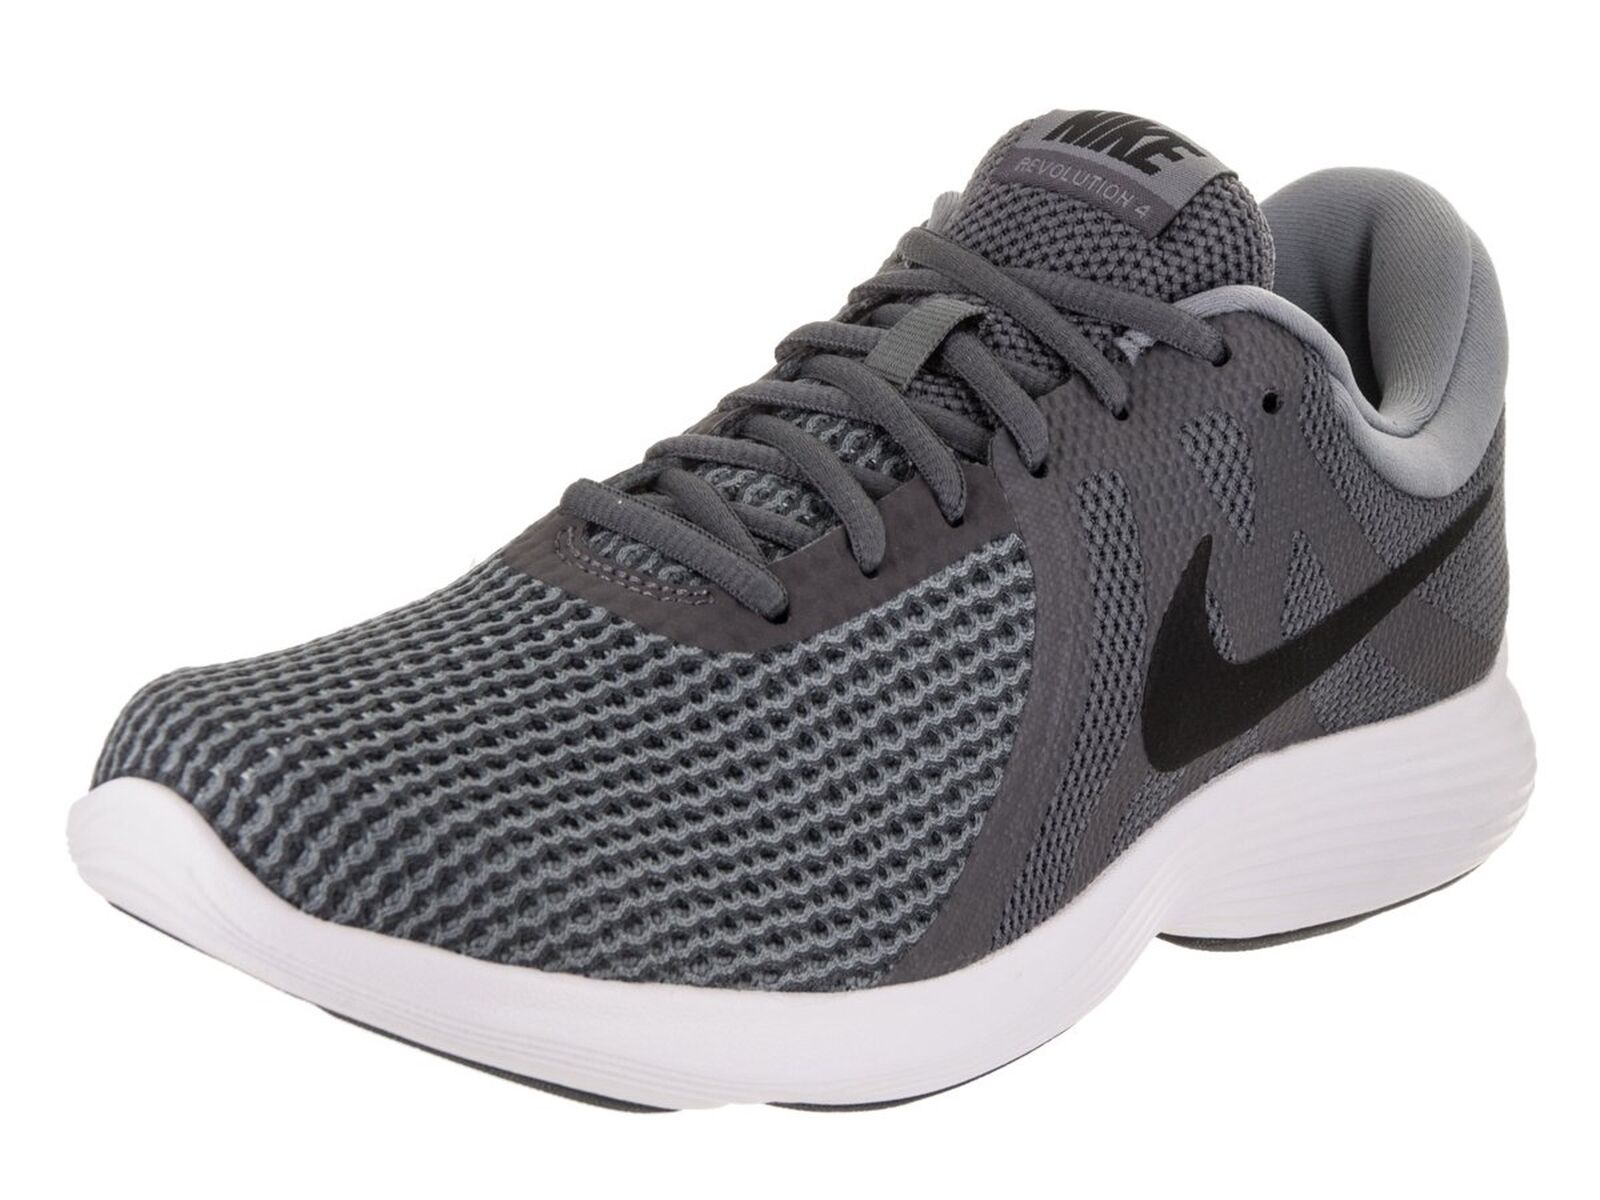 NIKE Men's Revolution 4 Running Shoe Dark Grey/Black/White Size 13